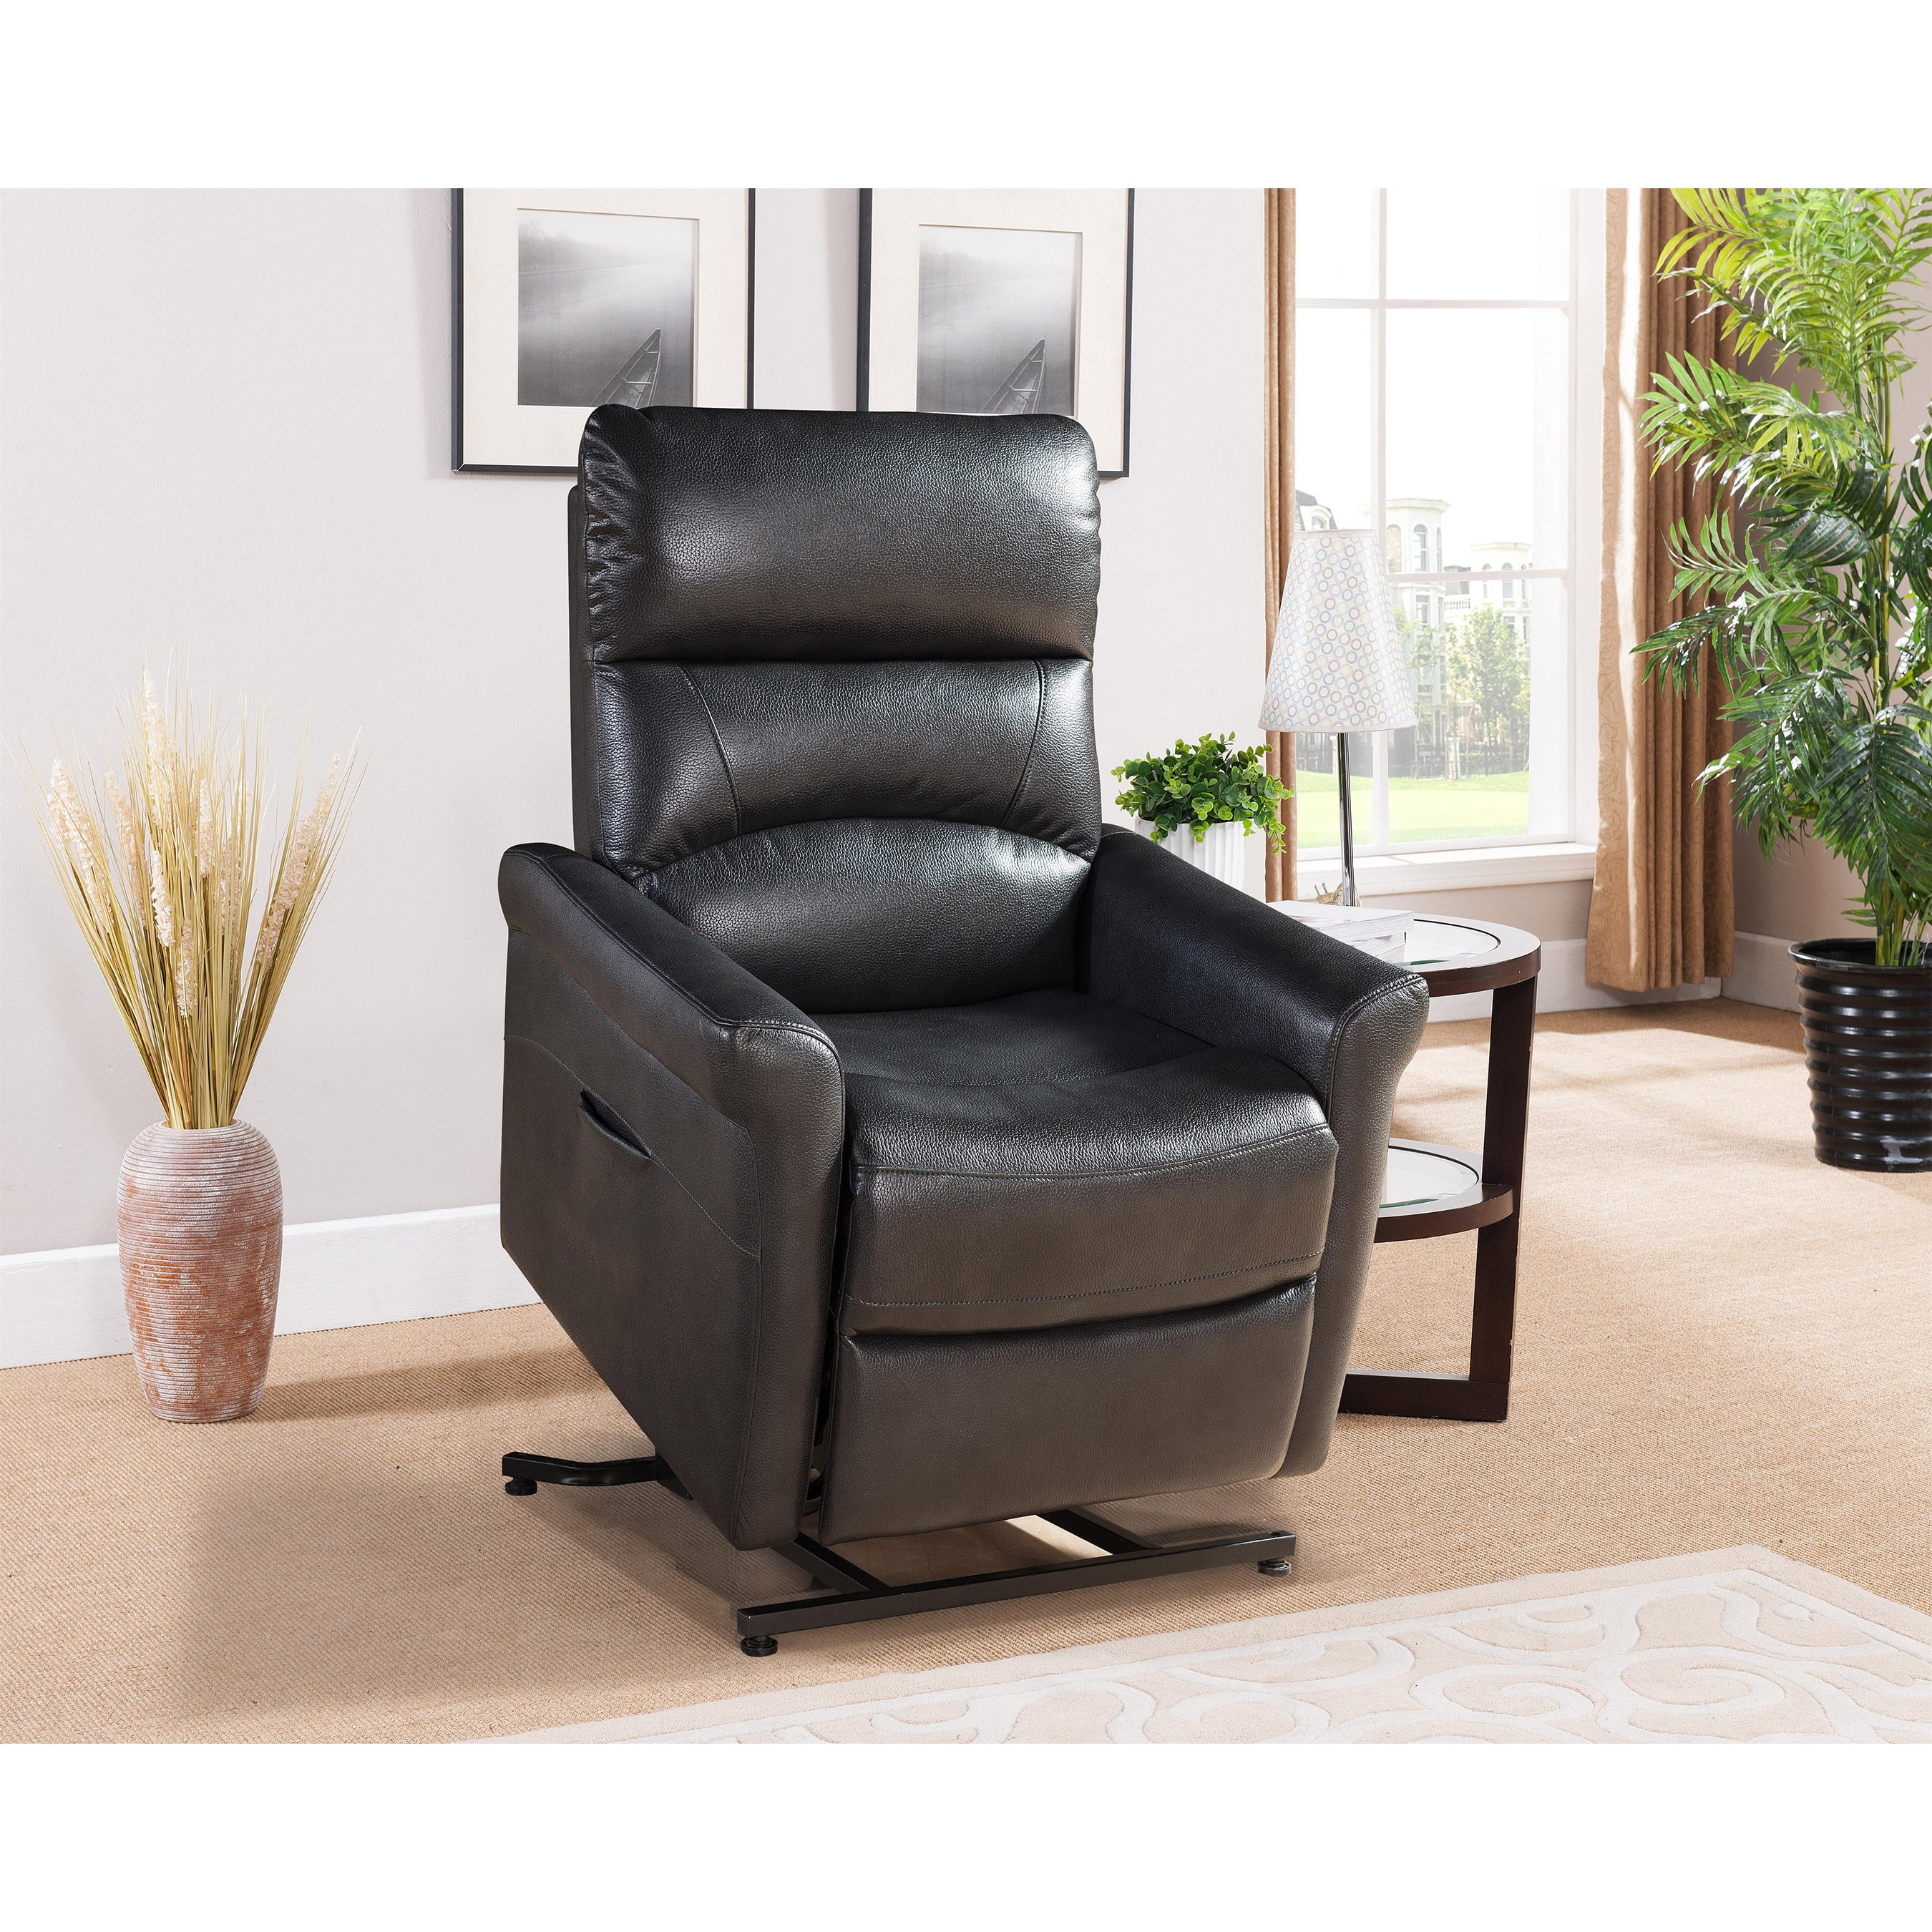 AC Pacific Colby Black Reclining Power Lift Chair, Size S...